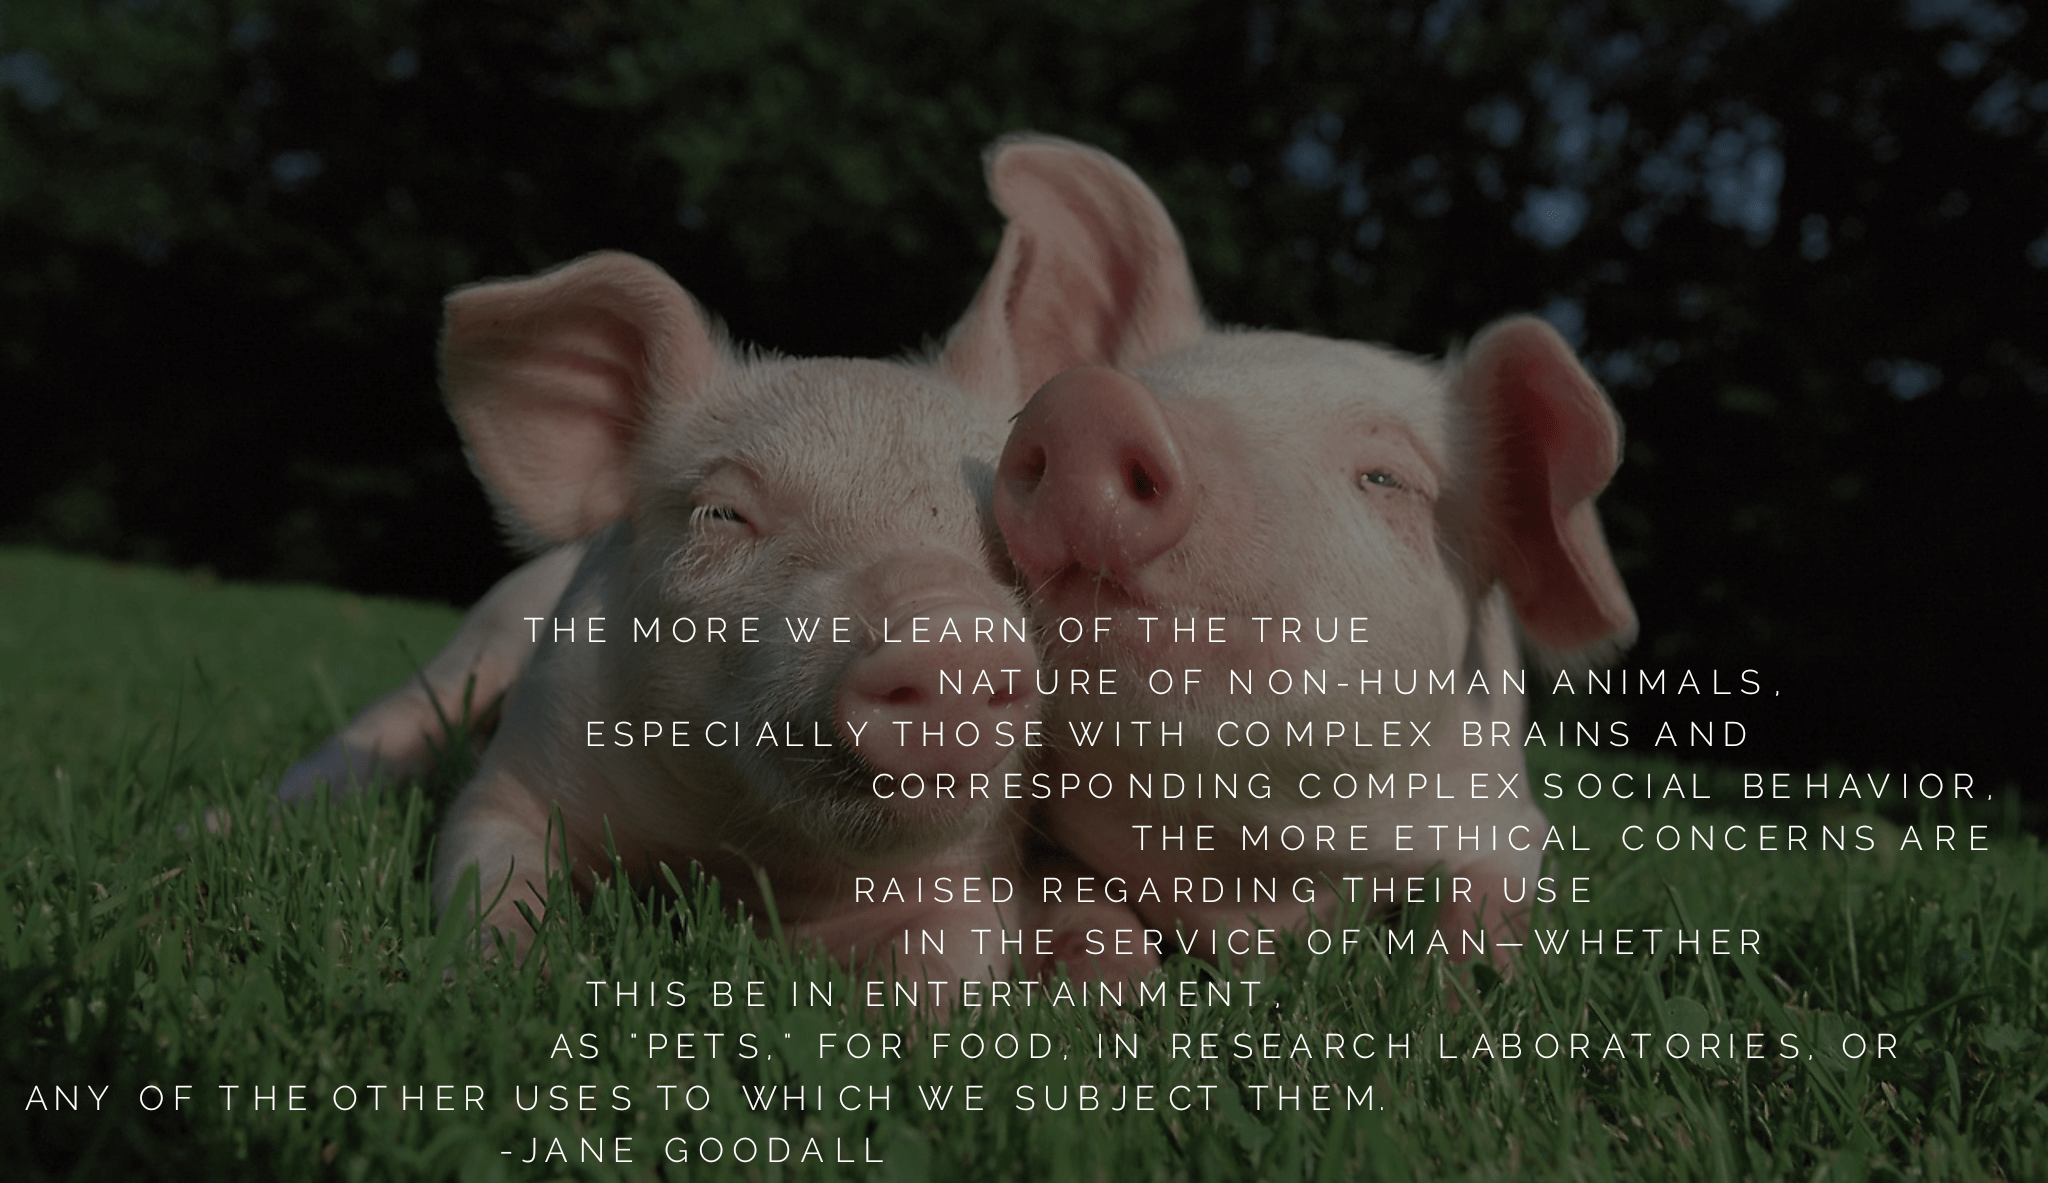 """The more we learn of the true nature of non-human animals, especially those with complex brains and corresponding complex social behavior, the more ethical concerns are raised regarding their use in the service of man…"" -Jane Goodall [2048×1183]"